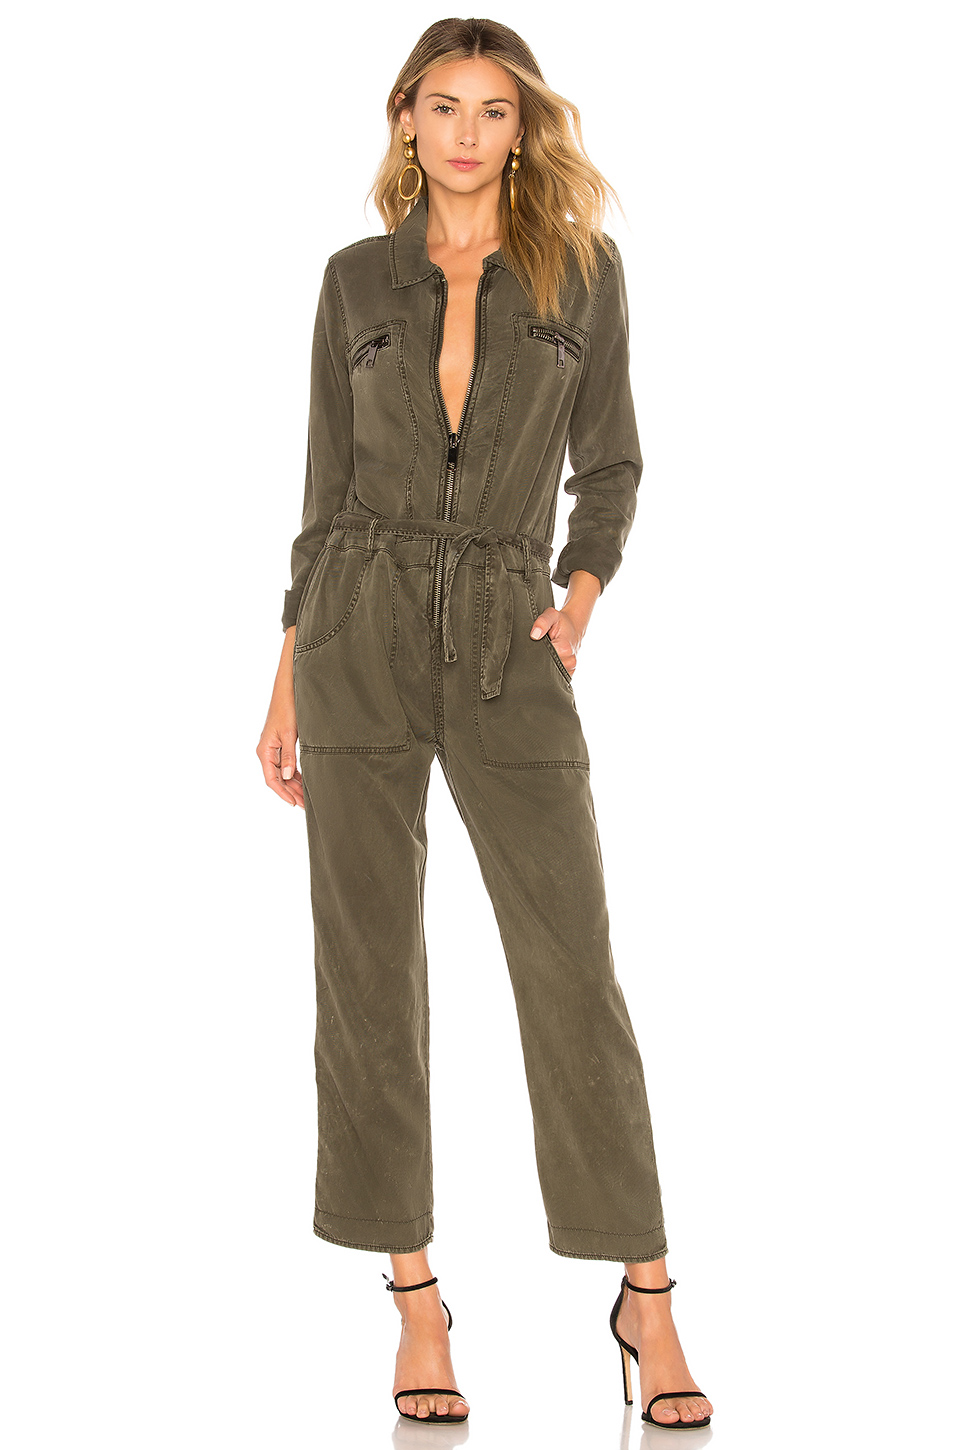 5a649ab228b6 Buy Original Hudson Jeans Long Sleeve Jumpsuit at Indonesia